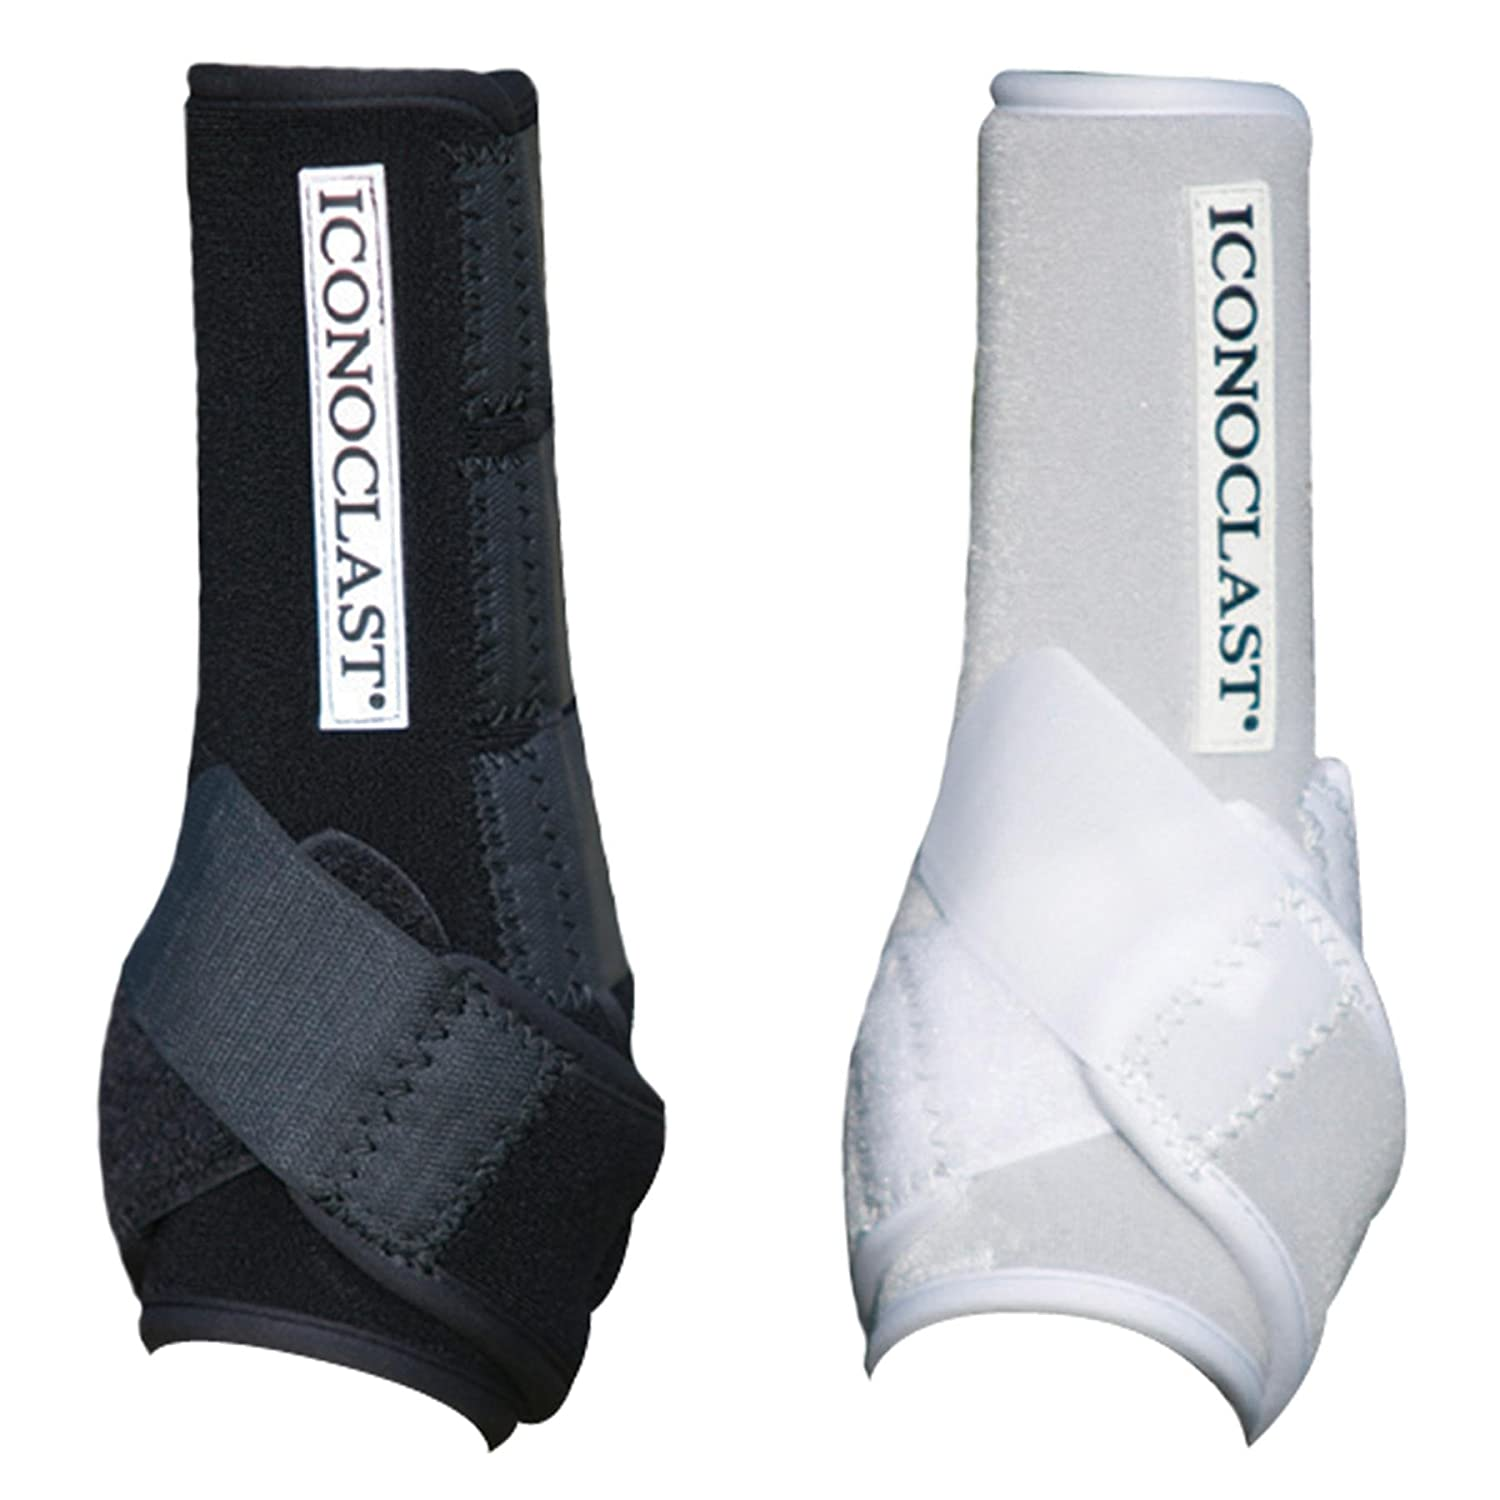 White X-Large White X-Large Iconoclast Orthopedic Support Boots front